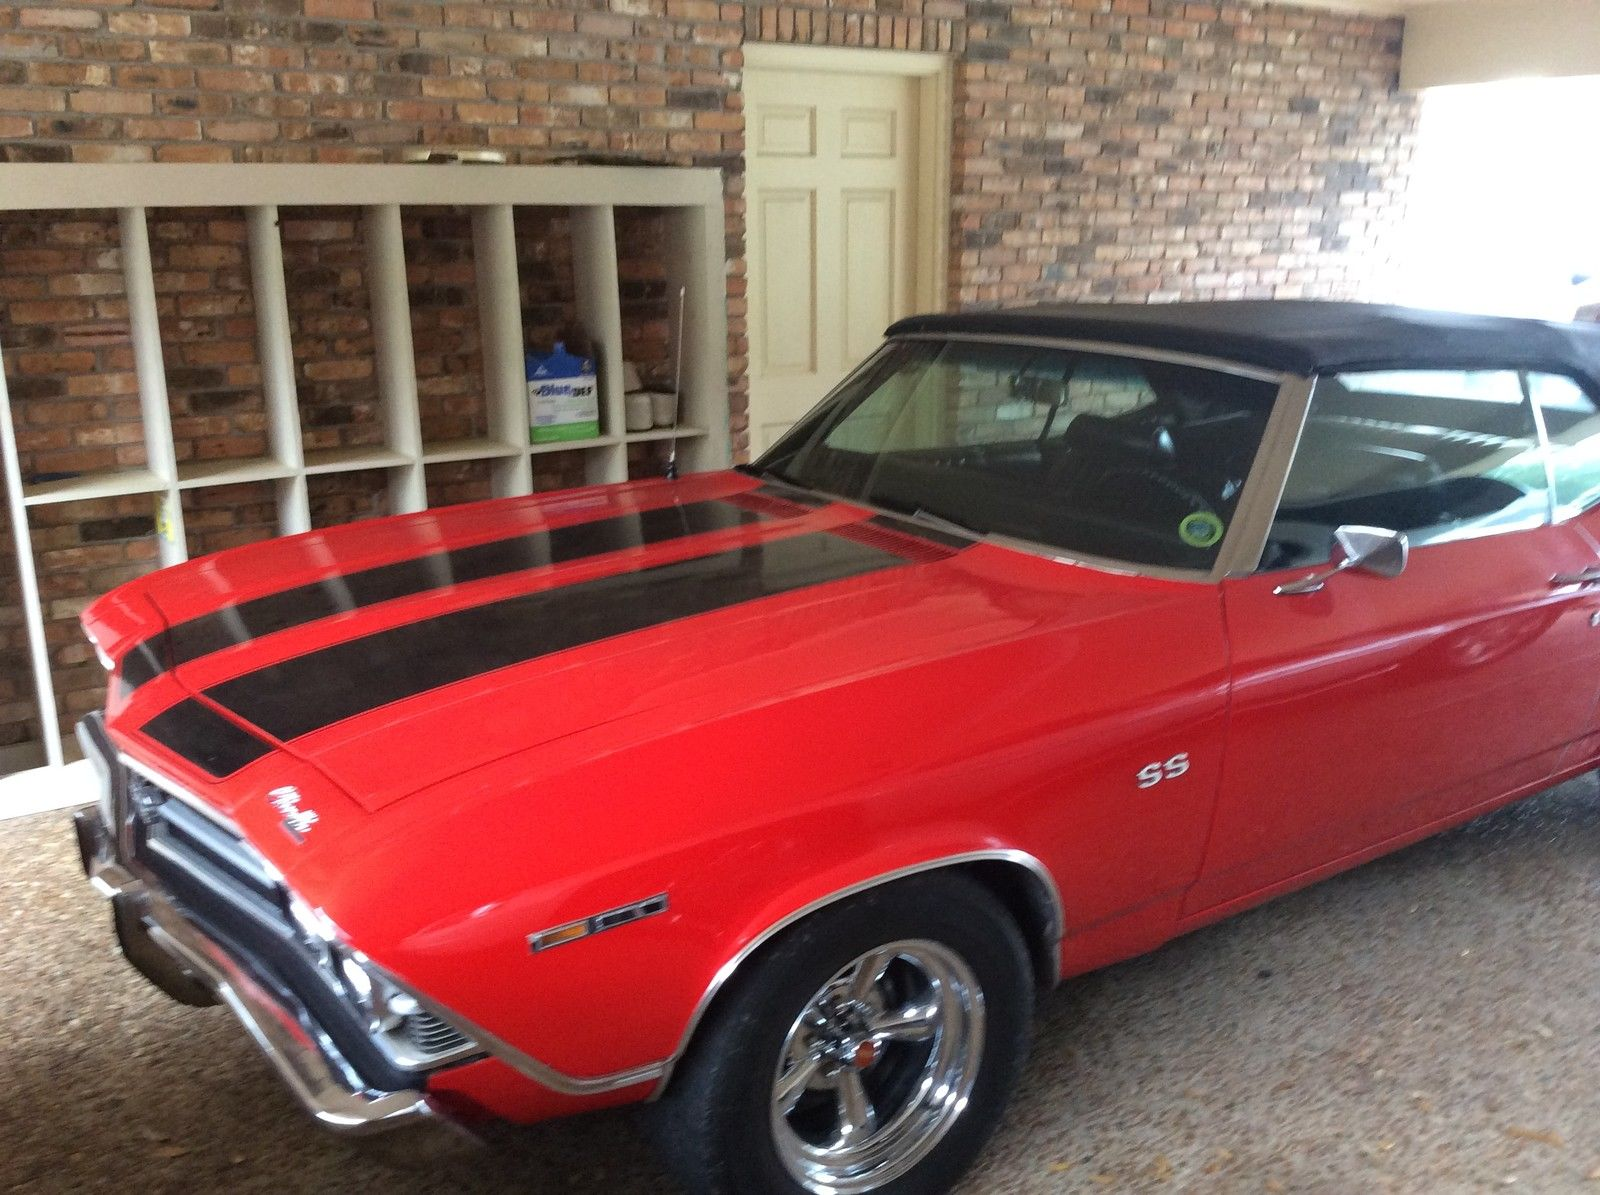 Chevelle Malibu Ss Soft Top Convertible Red With Black Stripes on 1970 Chevy Malibu